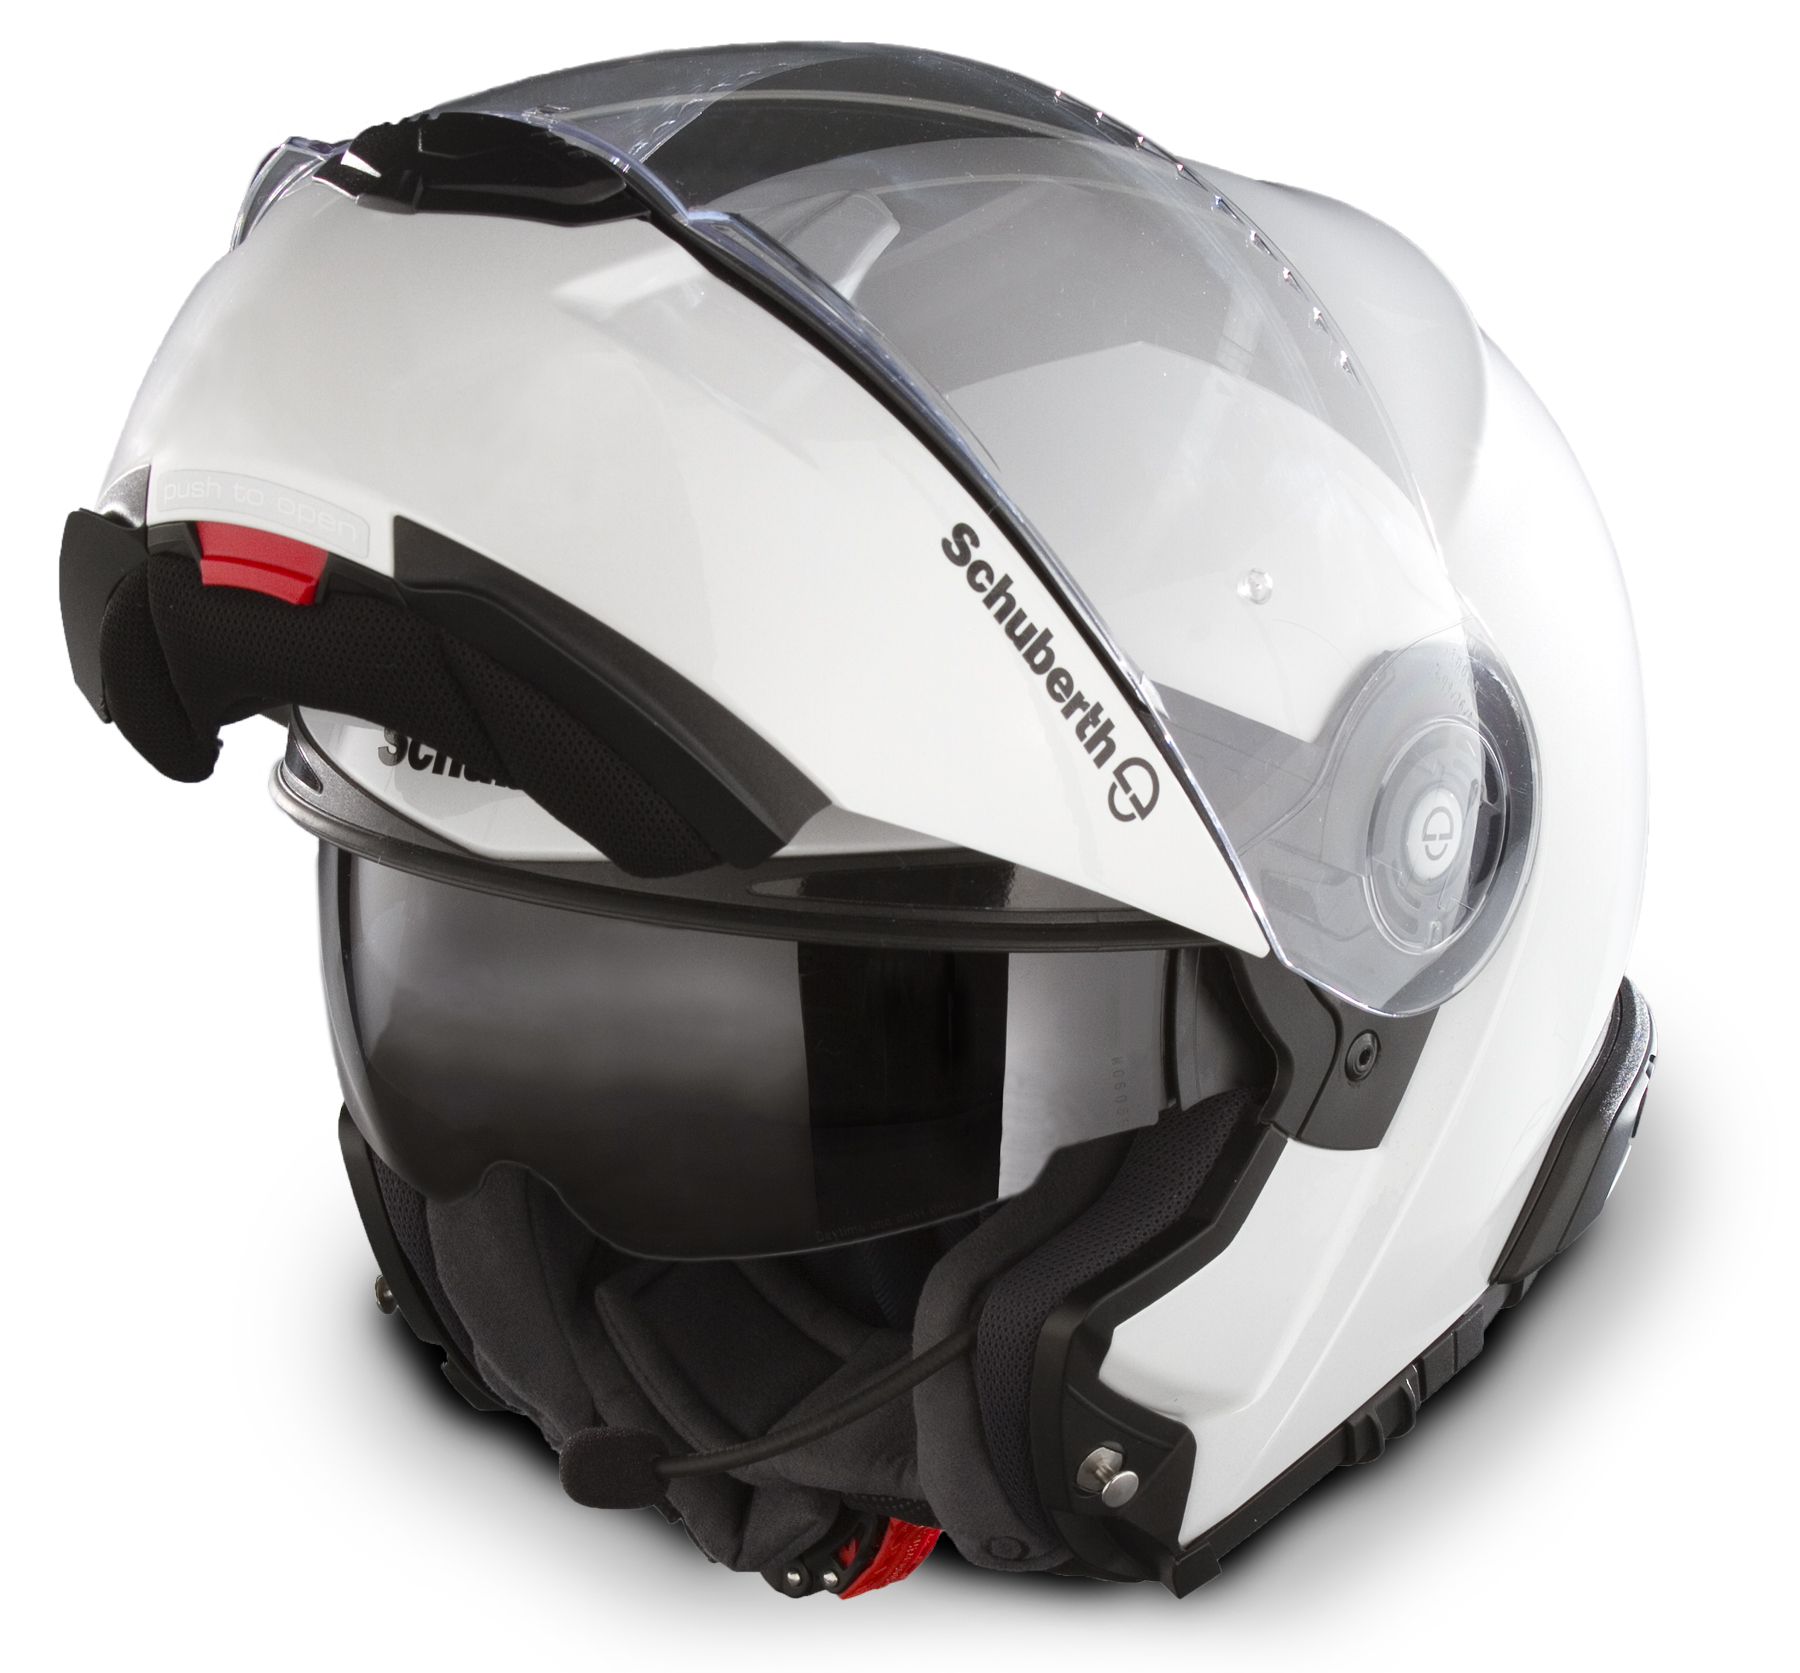 Schuberth Reveals BMW K1600GTL Exclusive-Matched Mineral White C3 Pro